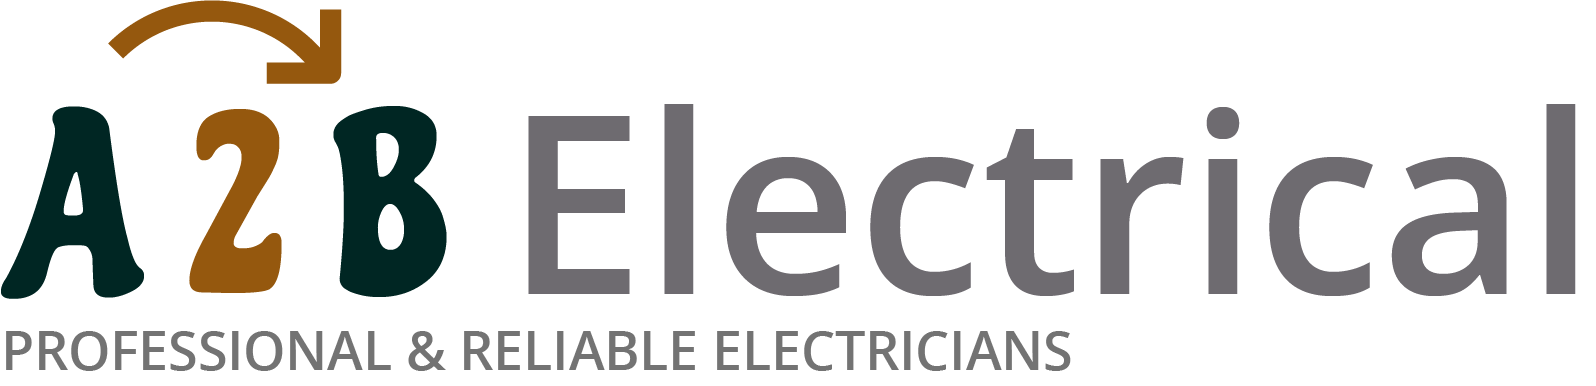 If you have electrical wiring problems in Croydon, we can provide an electrician to have a look for you.